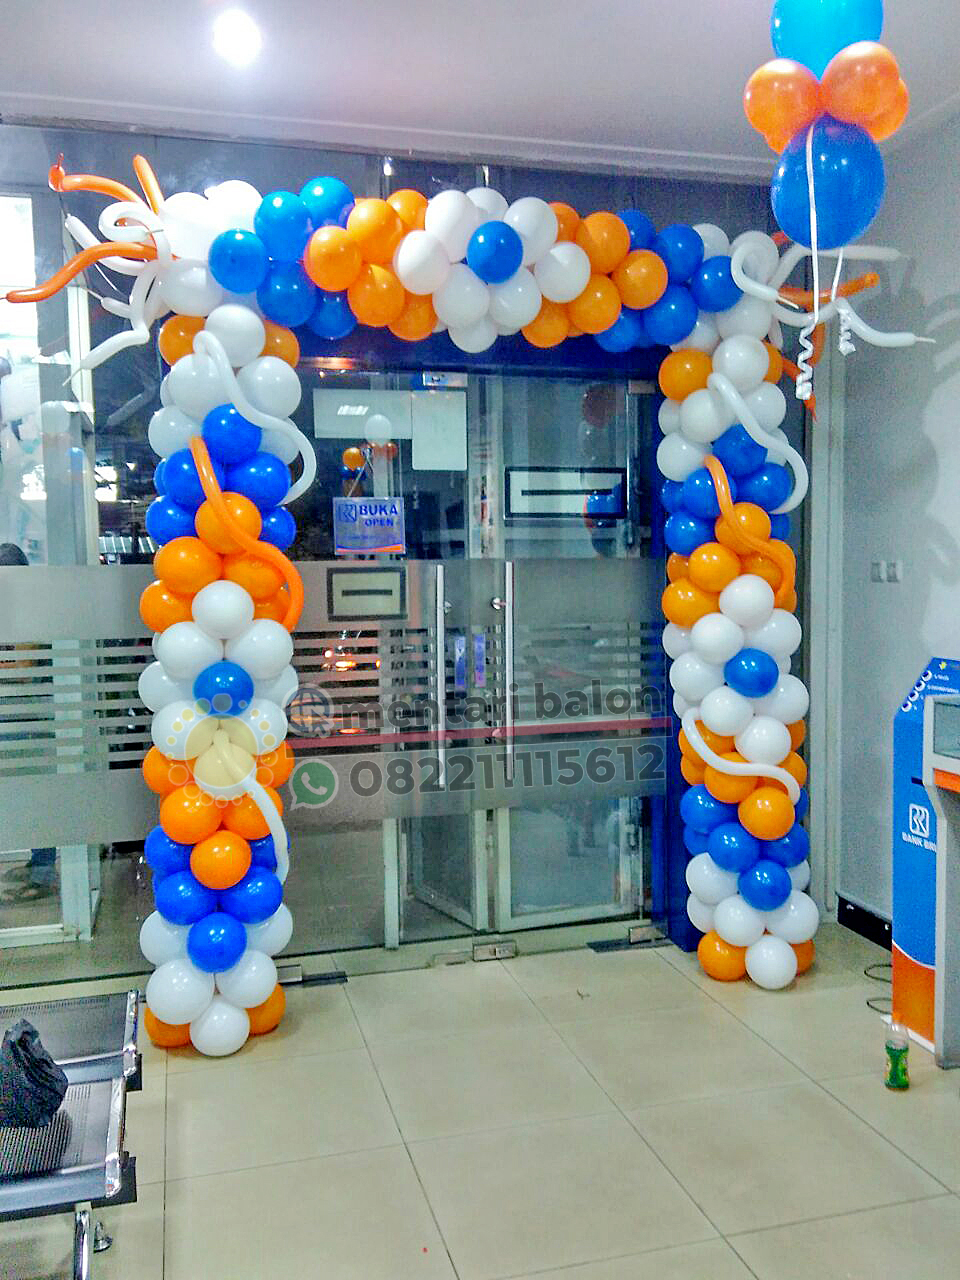 balon gate dekorasi bank bri